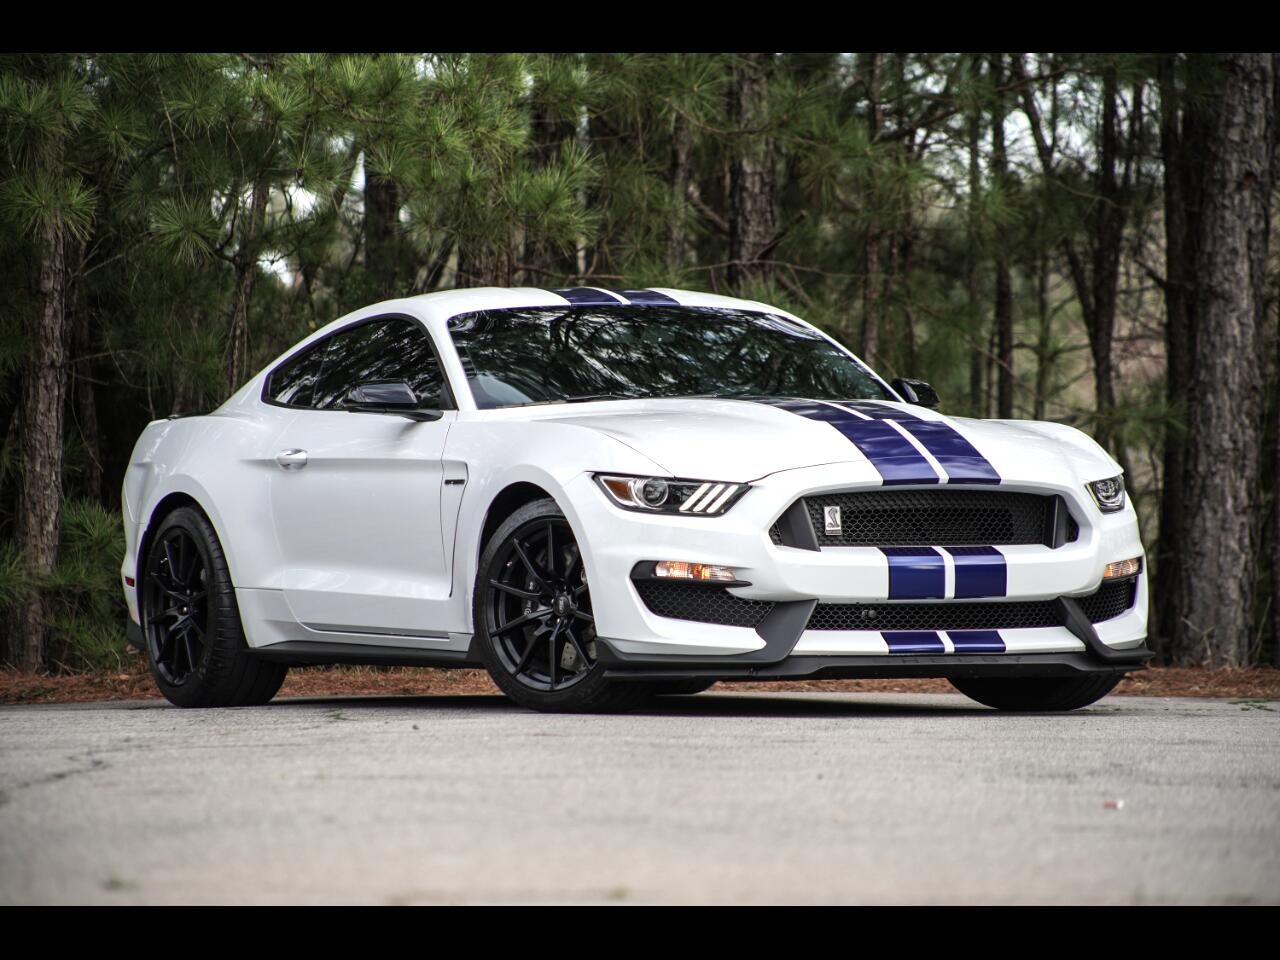 2016 Ford Mustang GT350 Shelby Loaded Up Mustang 5.2L Hurry!